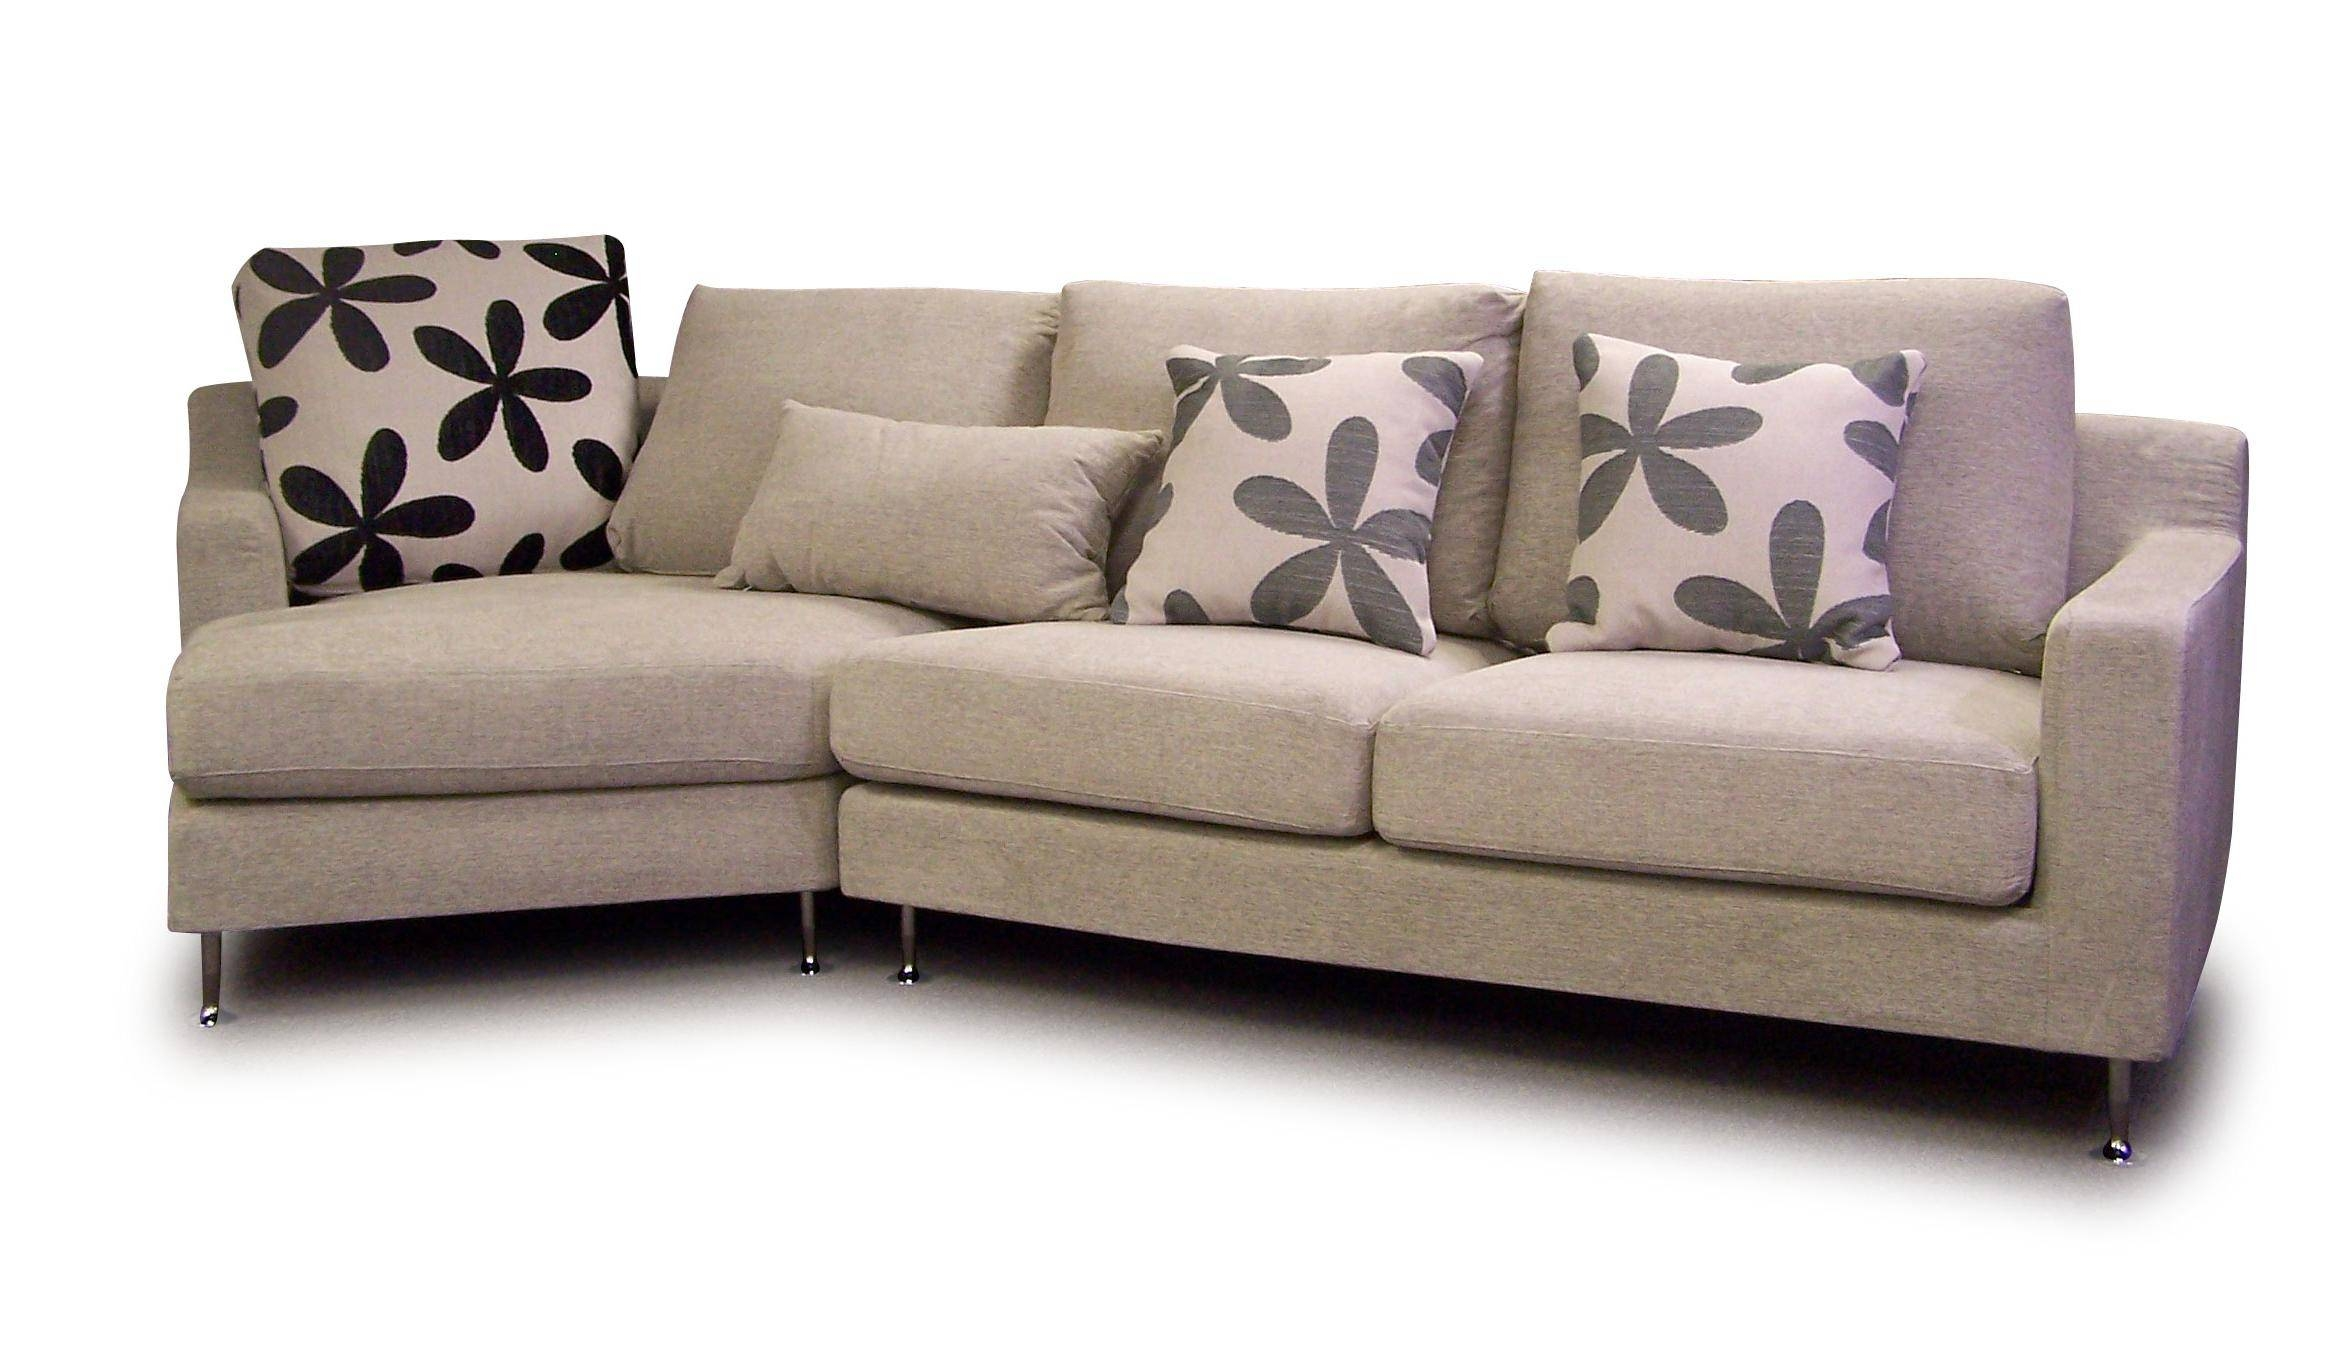 Wonderful Couches For Sale Sofas On A To Decor within Sofas Cheap Prices (Image 30 of 30)